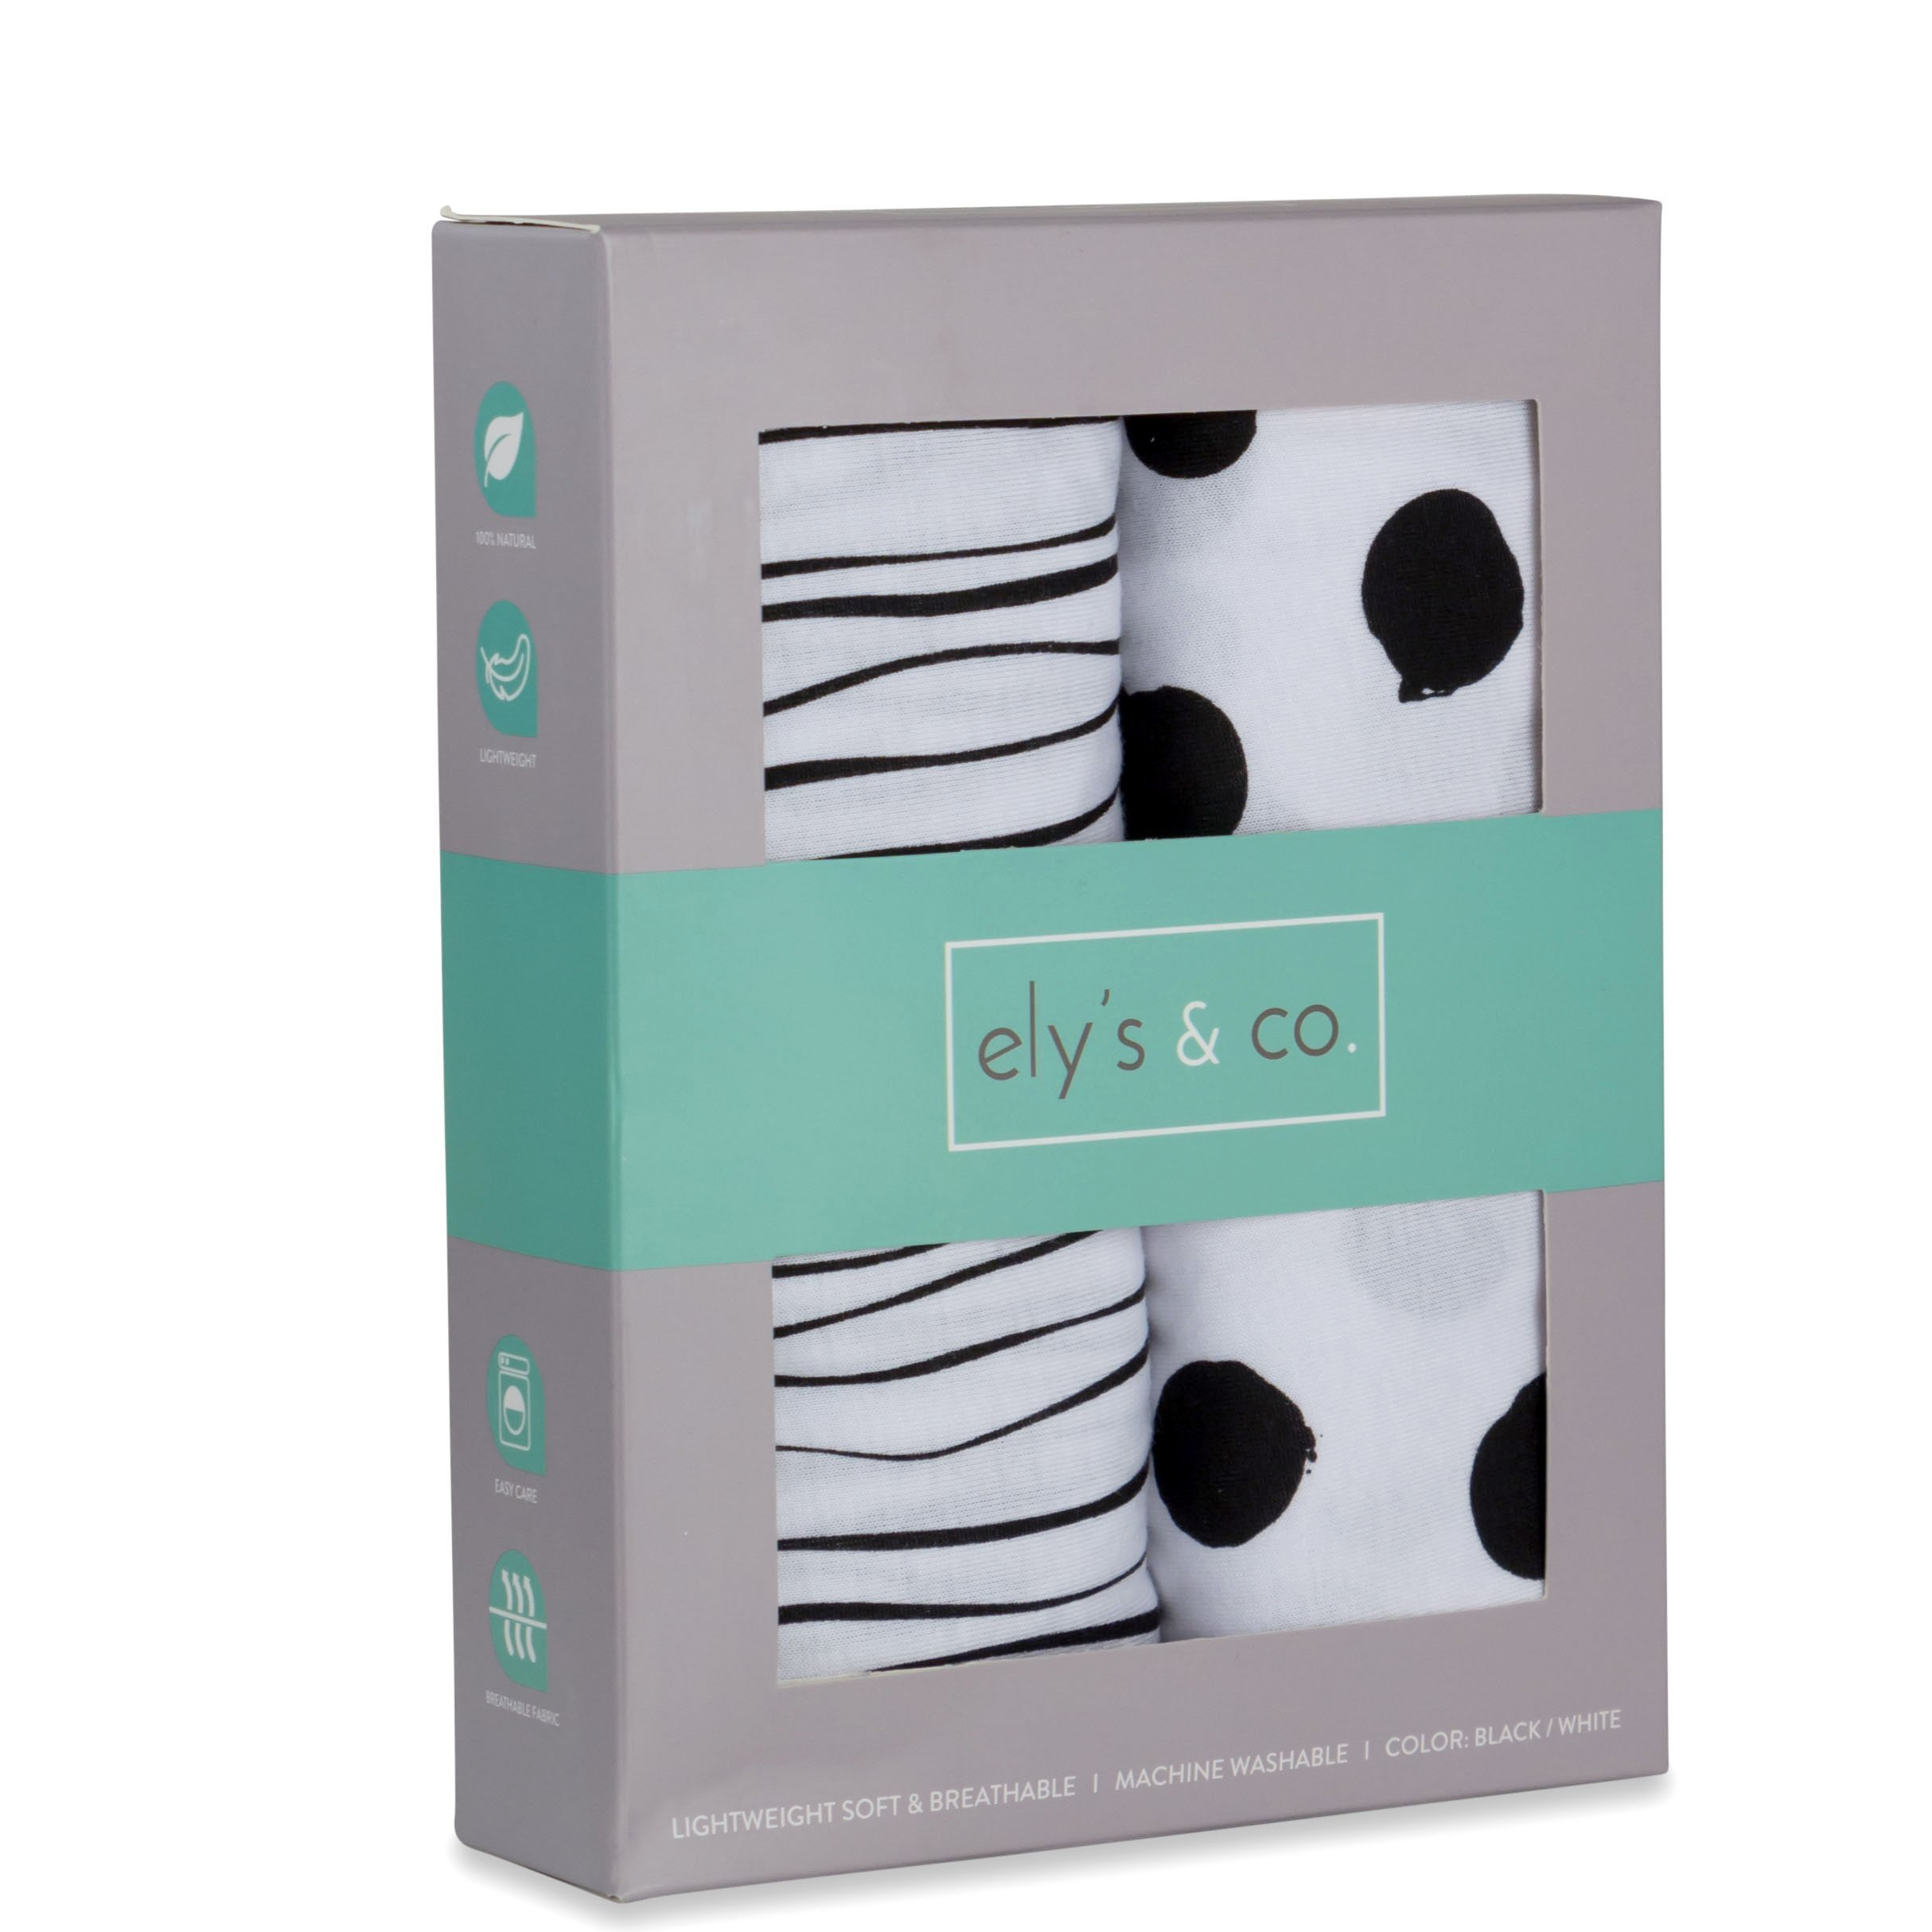 Pack n Play Playard Sheet | Portable Crib Sheet Set 2 Pack Black and White Abstract Stripes and Dots by Ely's & Co